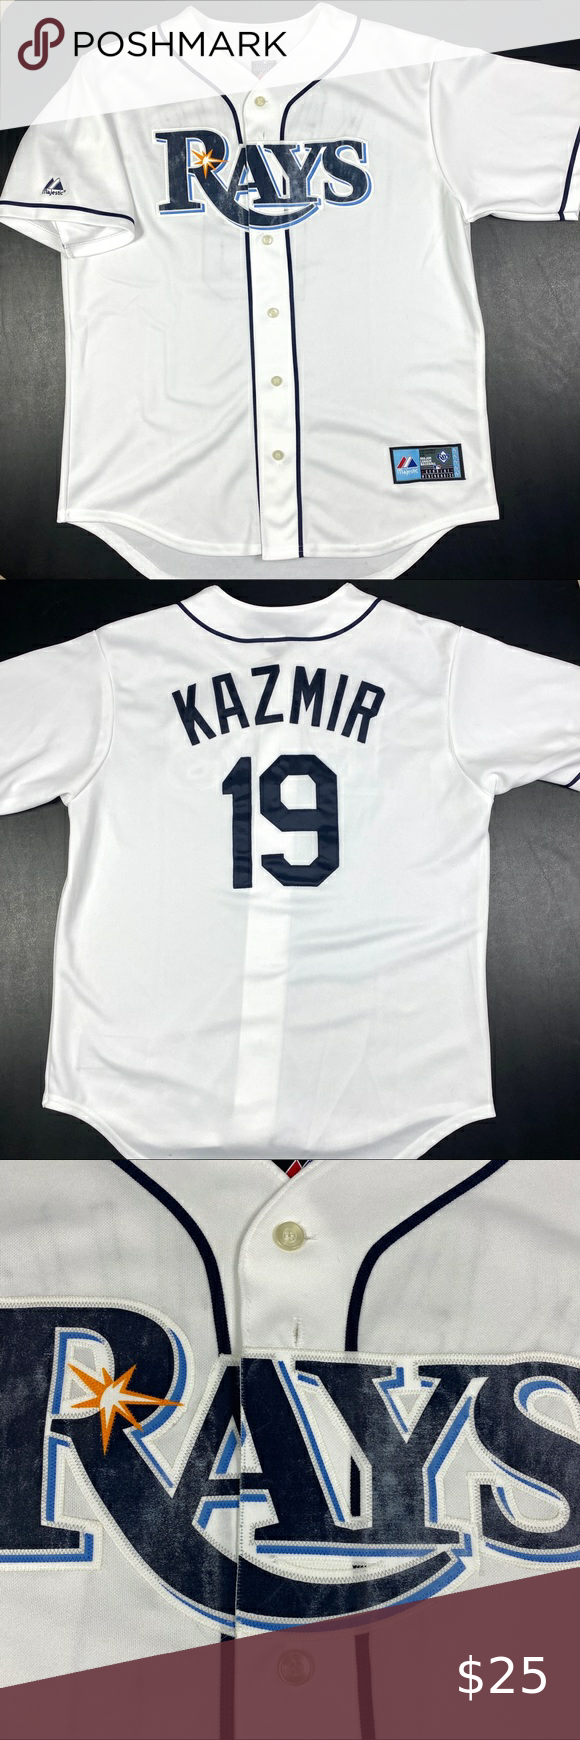 Tampa Bay Rays Scott Kazmir Majestic Jersey Tampa Bay Rays Vgt Majestic Scott Kazmir Home Jersey Jersey Is In In 2020 Majestic Shirts Clothes Design Tampa Bay Rays